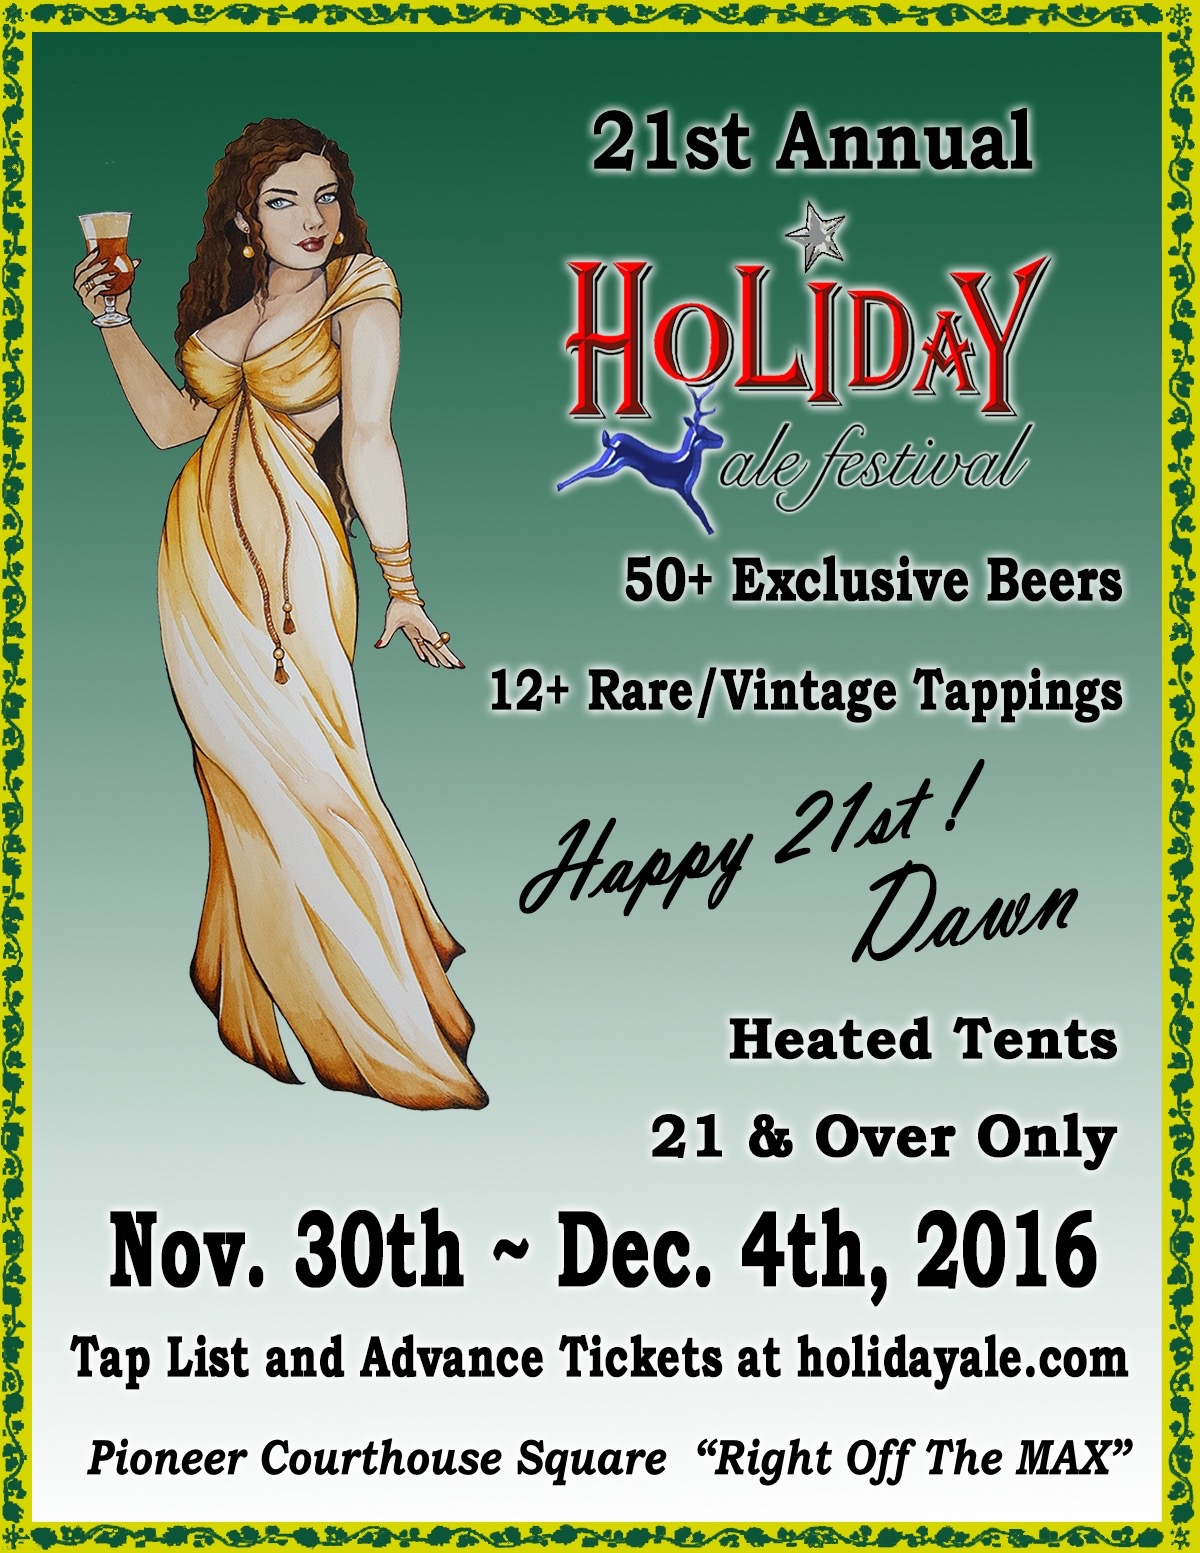 2016-holiday-ale-festival-vintage-pinup-poster-of-dawn